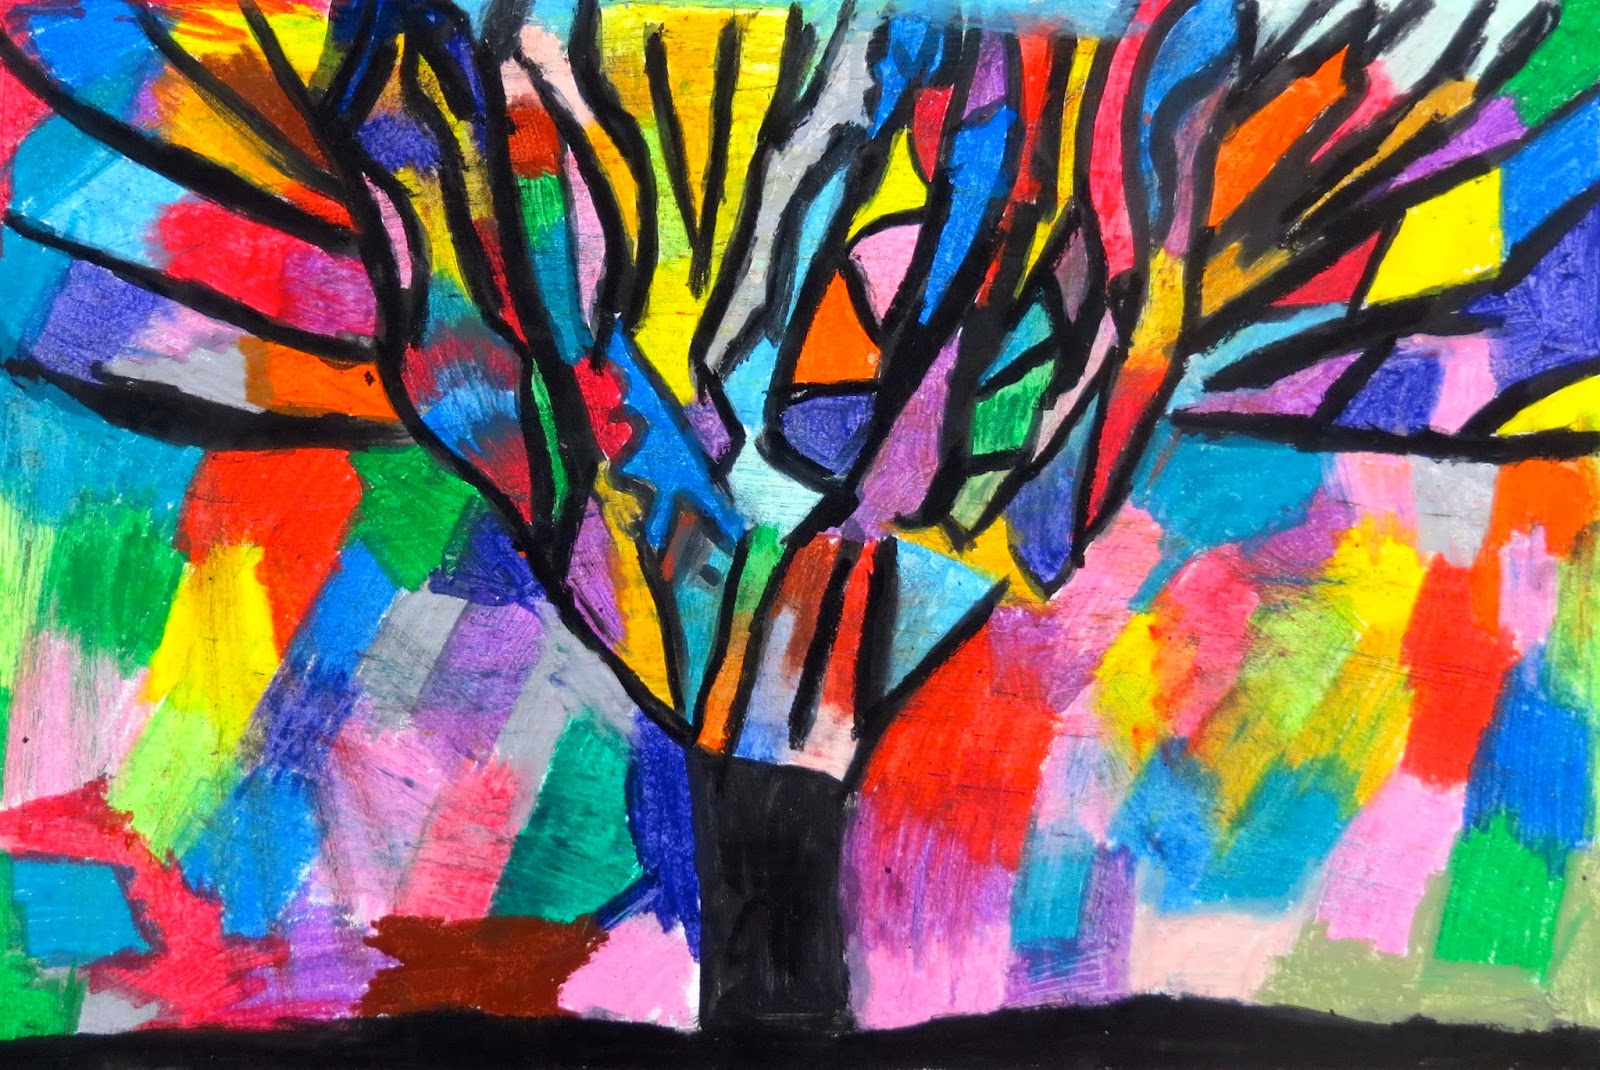 The Creative License Oil Pastel Trees